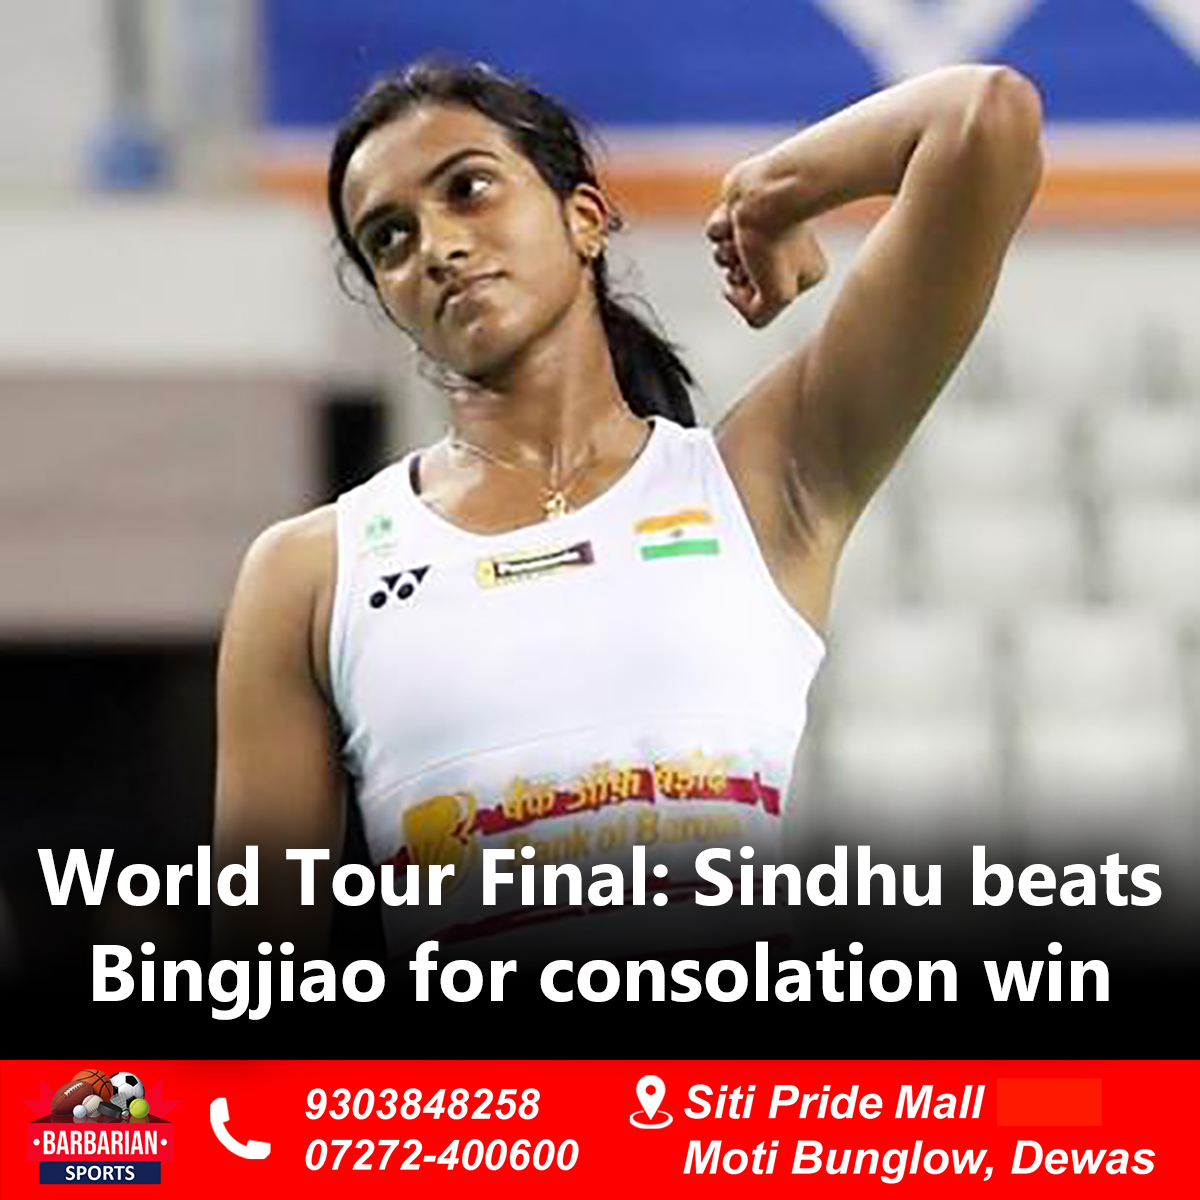 In Badminton, India's PV Sindhu recorded a consolation win over Chinese He Bing Jiao in the third group 'A' match of the BWF World Tour Final in Guangzhou, China today. . #pvsindhu #badminton #india #sainanehwal #badmintonindia #badmintonindonesia #kentomomota #jonathanchristie pic.twitter.com/pVM7oki2Yw